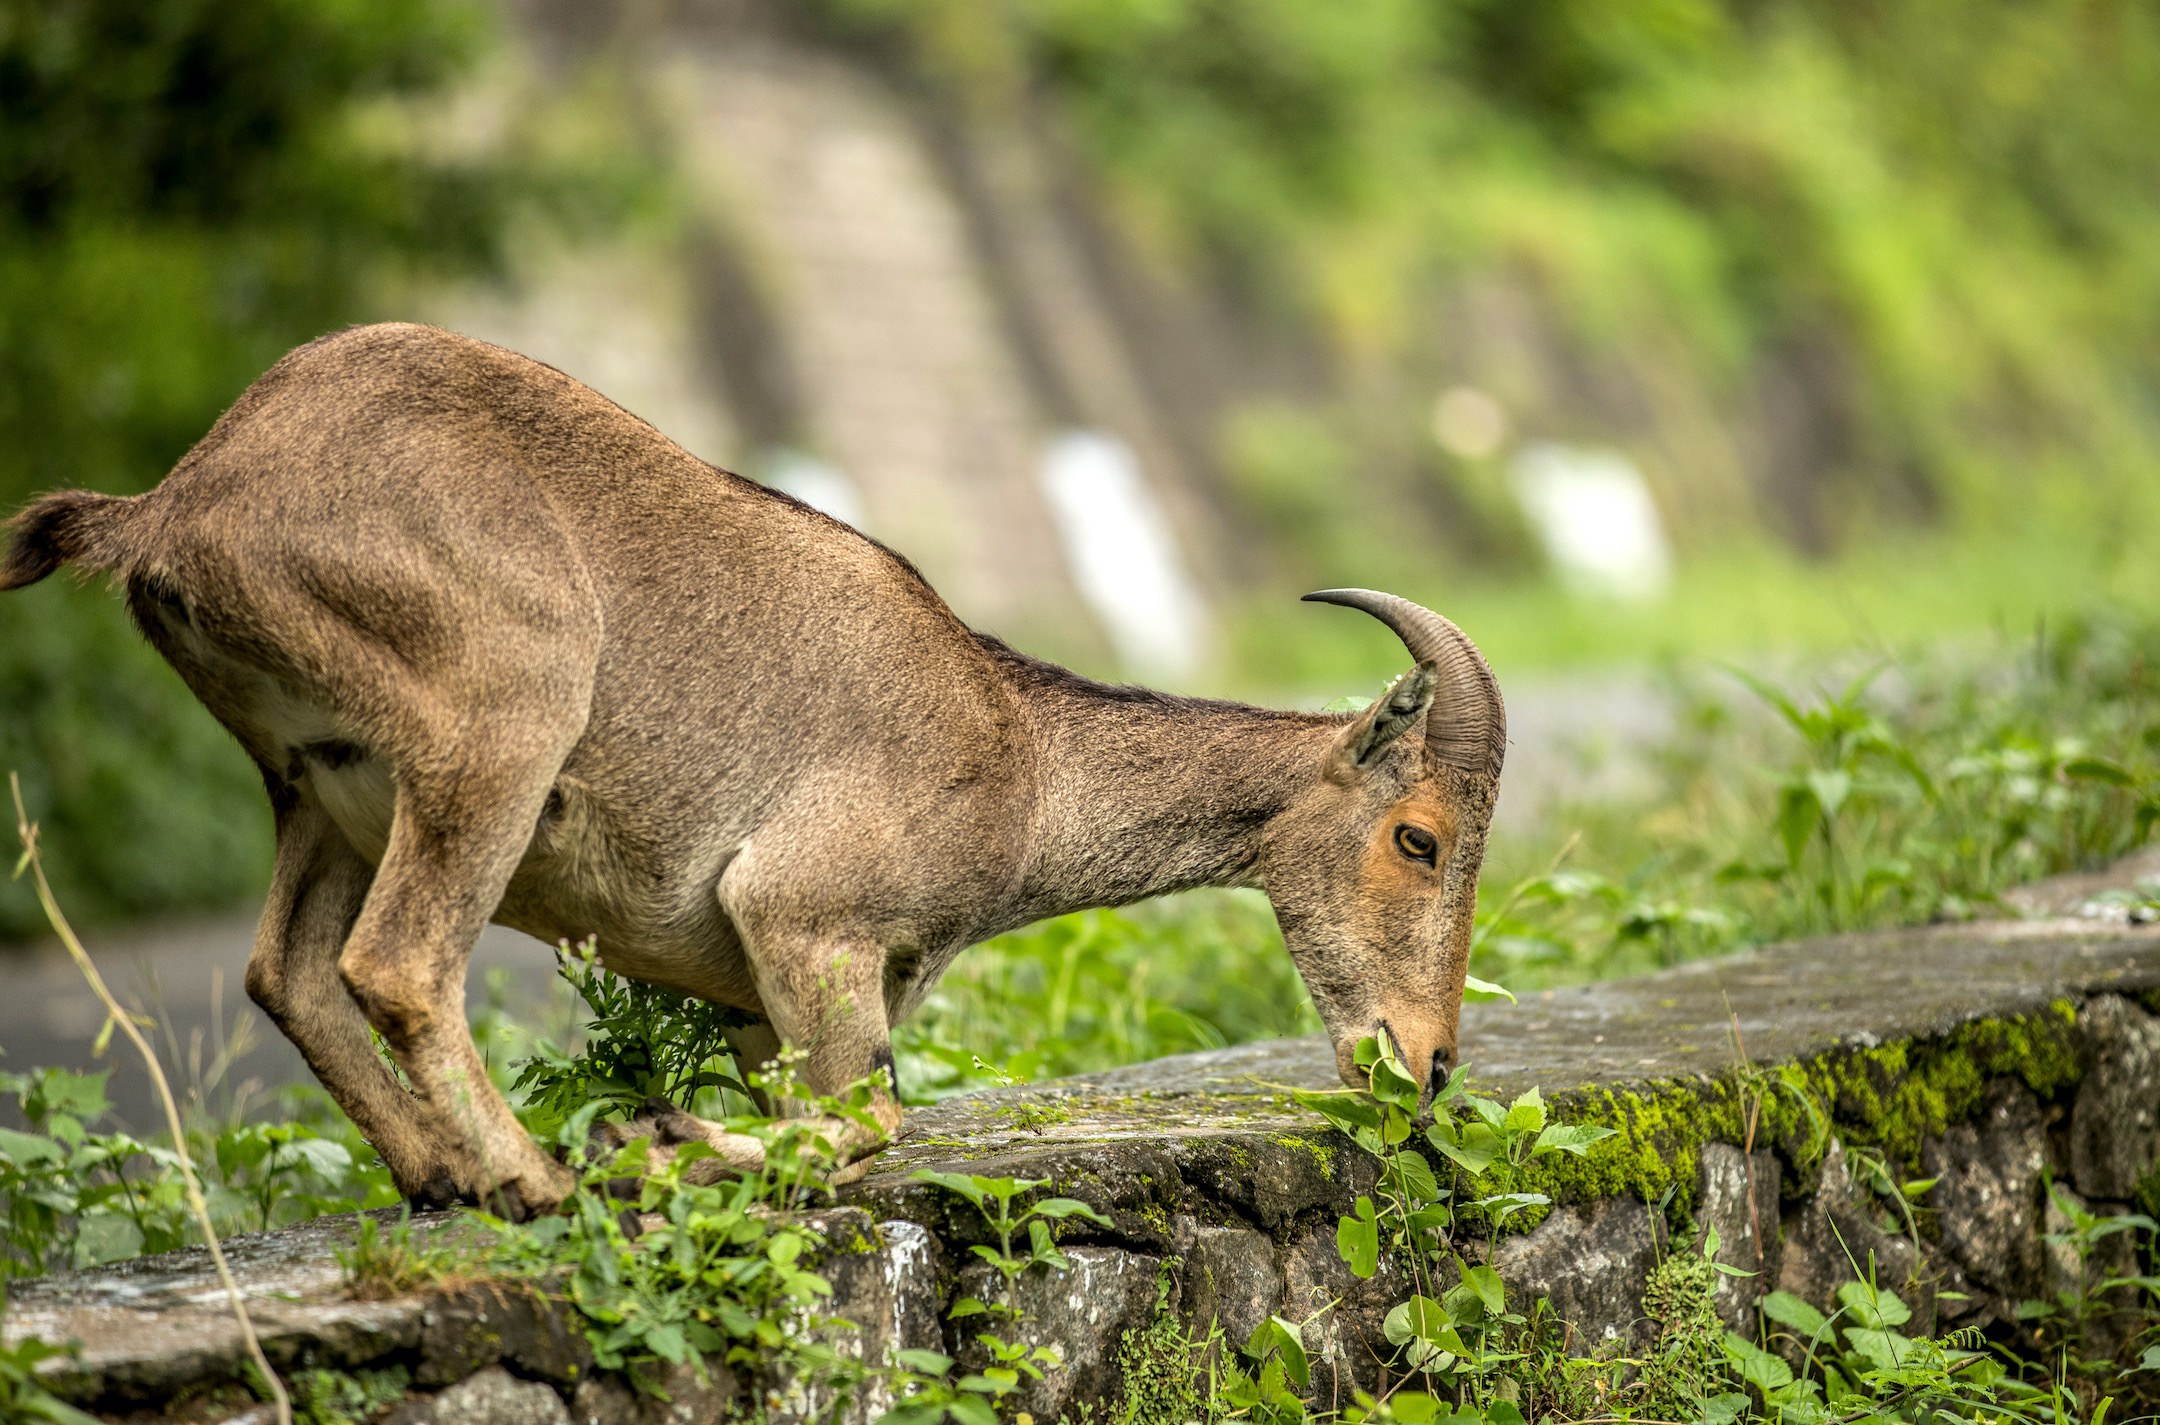 Like humans, the Nilgiri tahr is diurnal by nature, meaning they are active in the day. The animals spend early mornings and late afternoons grazing on grass and other shrubs, occasionally sauntering into areas of human habitation in search of food. Photo: Akshay Manwani